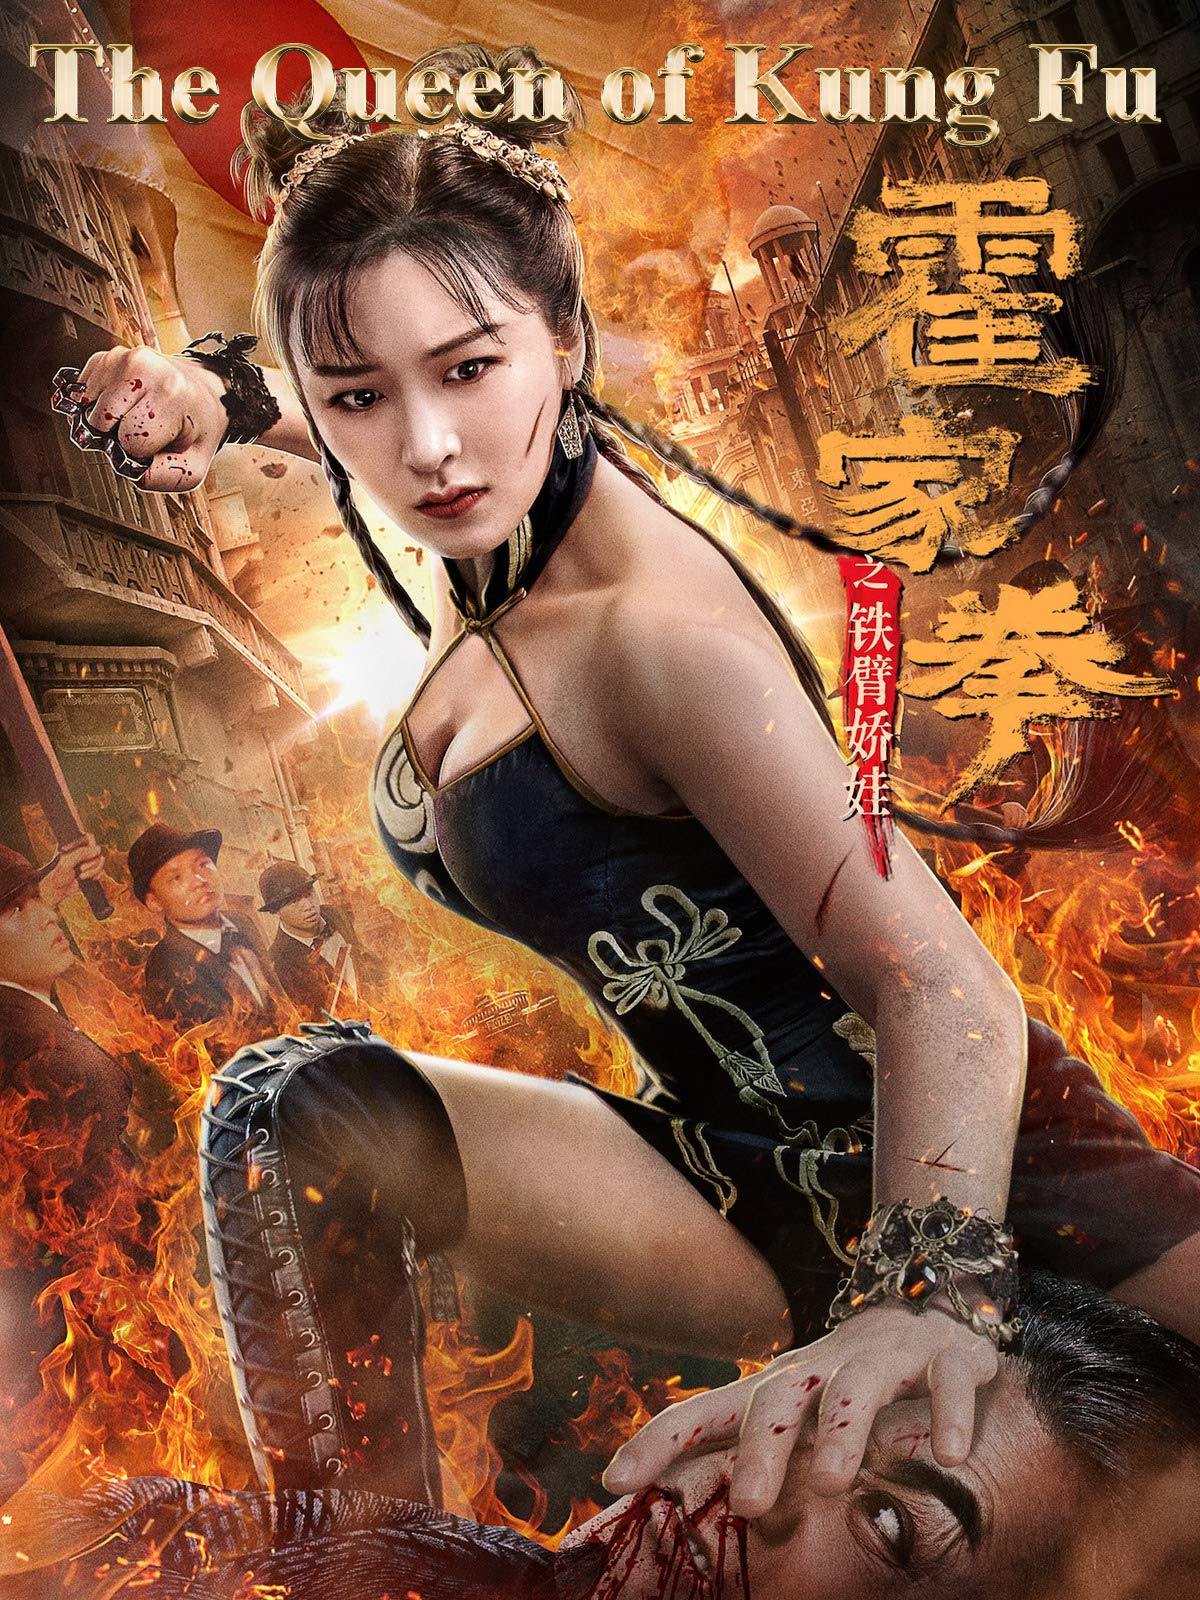 The Queen of Kung Fu